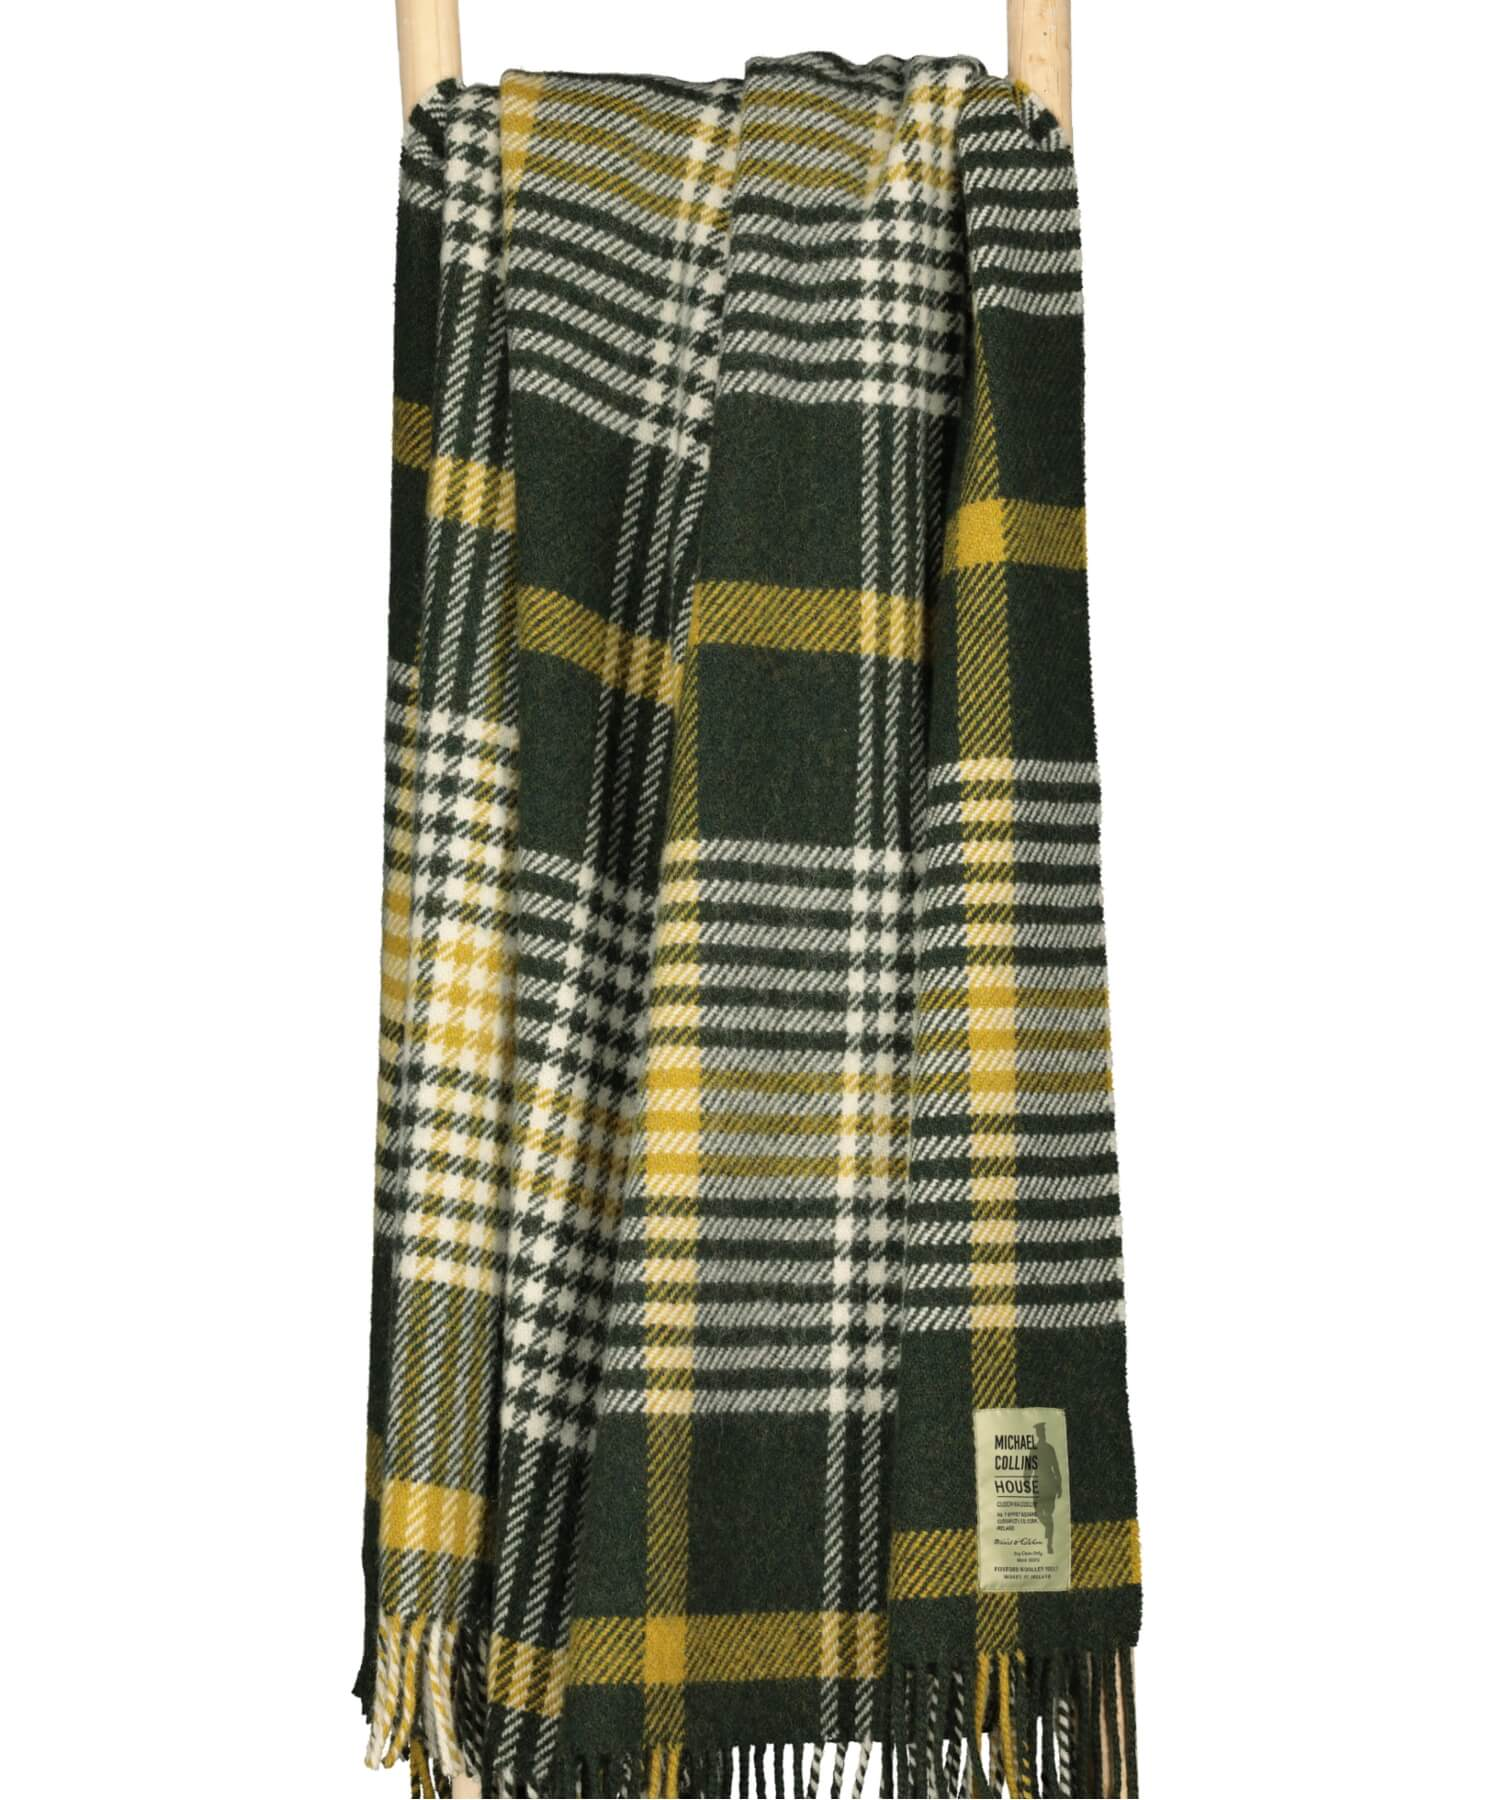 Luxury - Michael Collins Travel Blanket - [Foxford] - Throws & Cushions - Irish Gifts